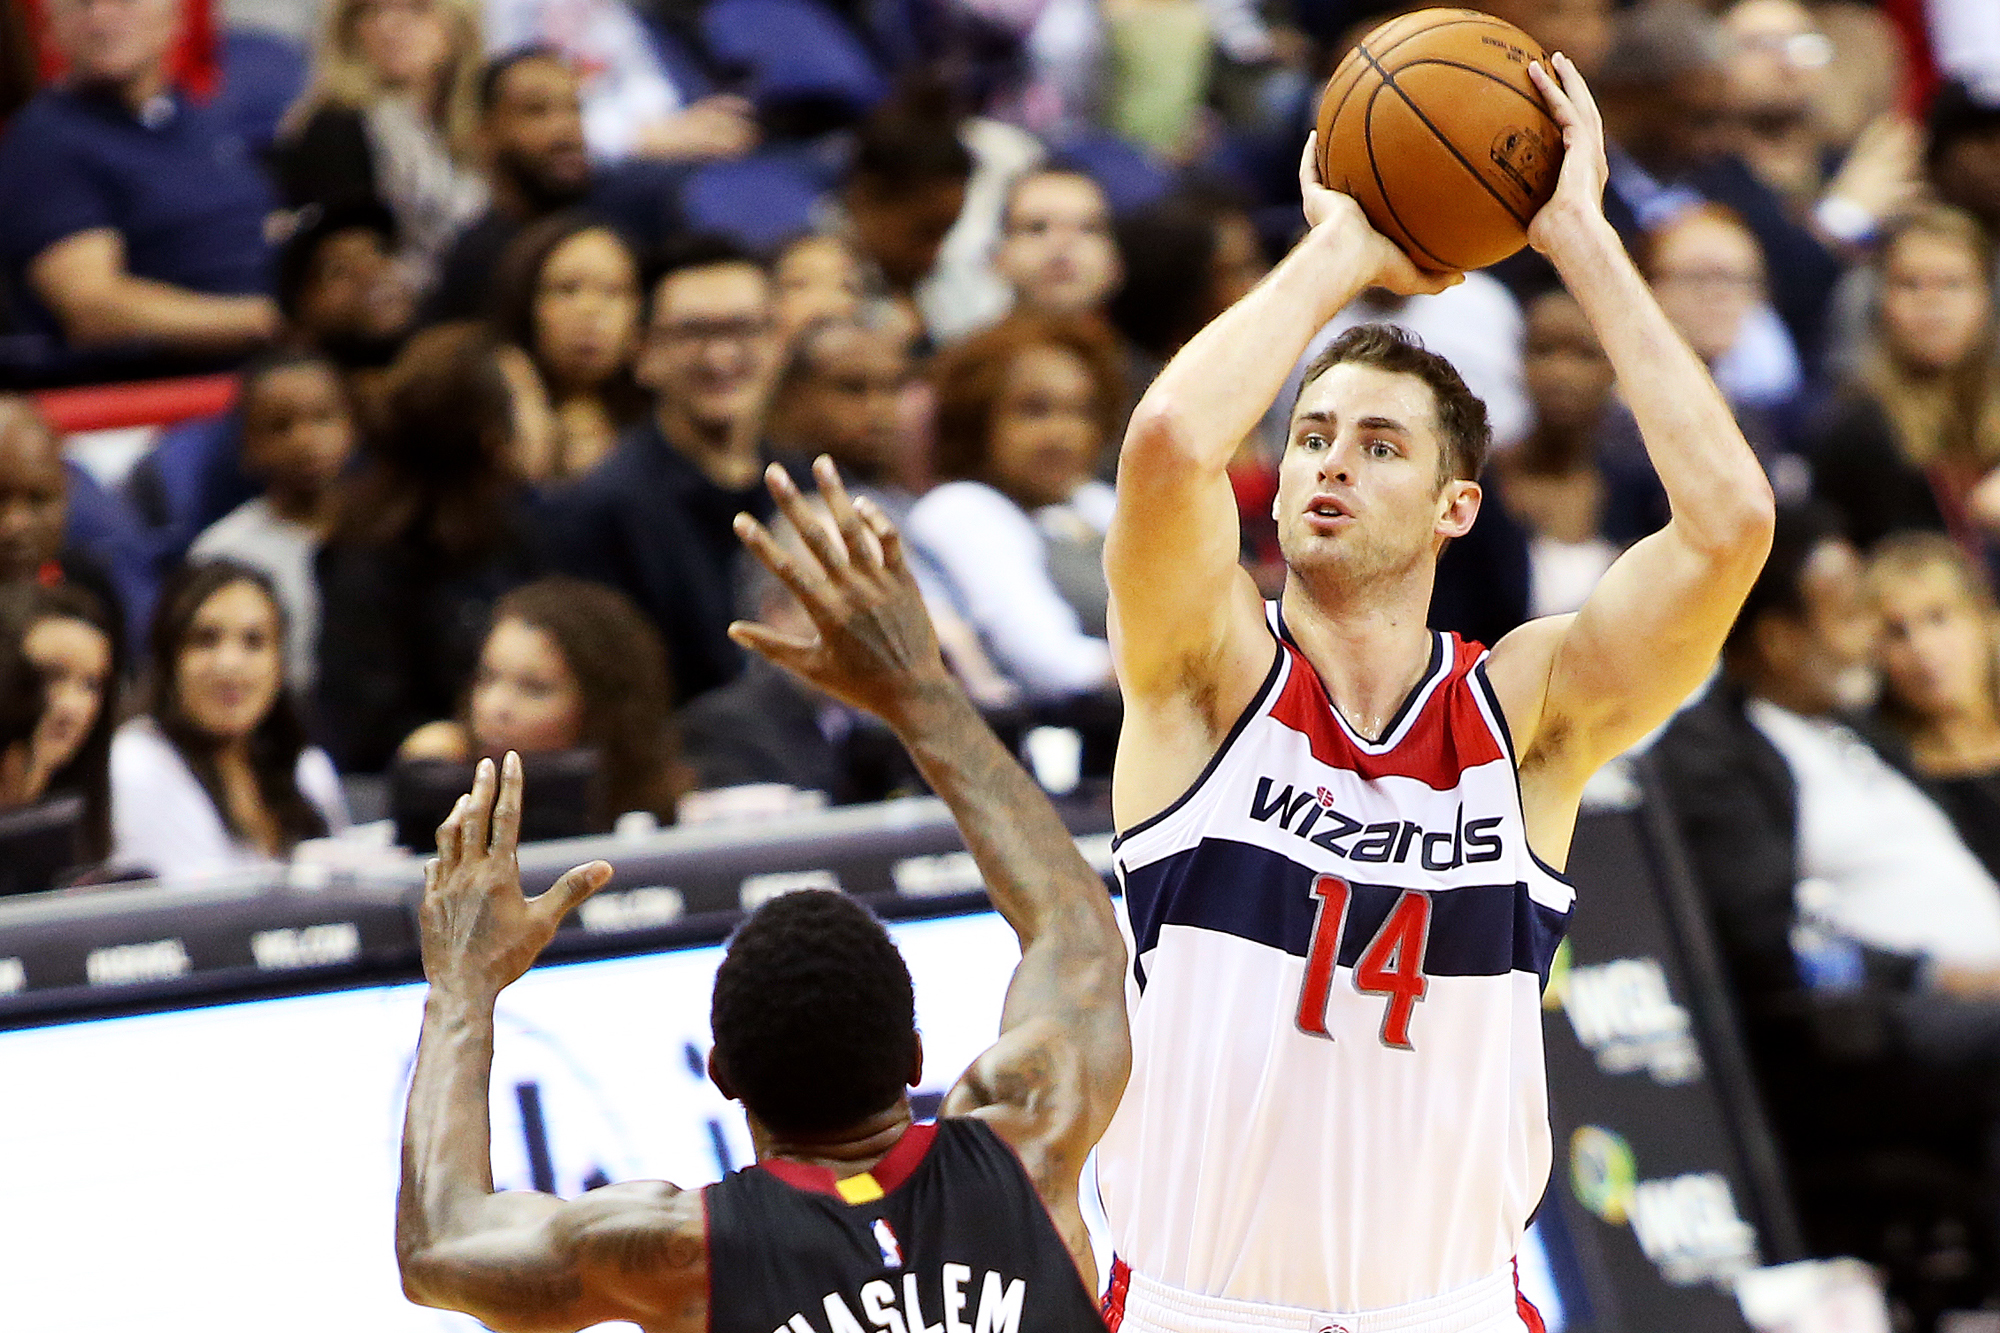 1b5e5fddb Washington Wizards forward Jason Smith (14) takes a shot over Miami Heat  forward Udonis